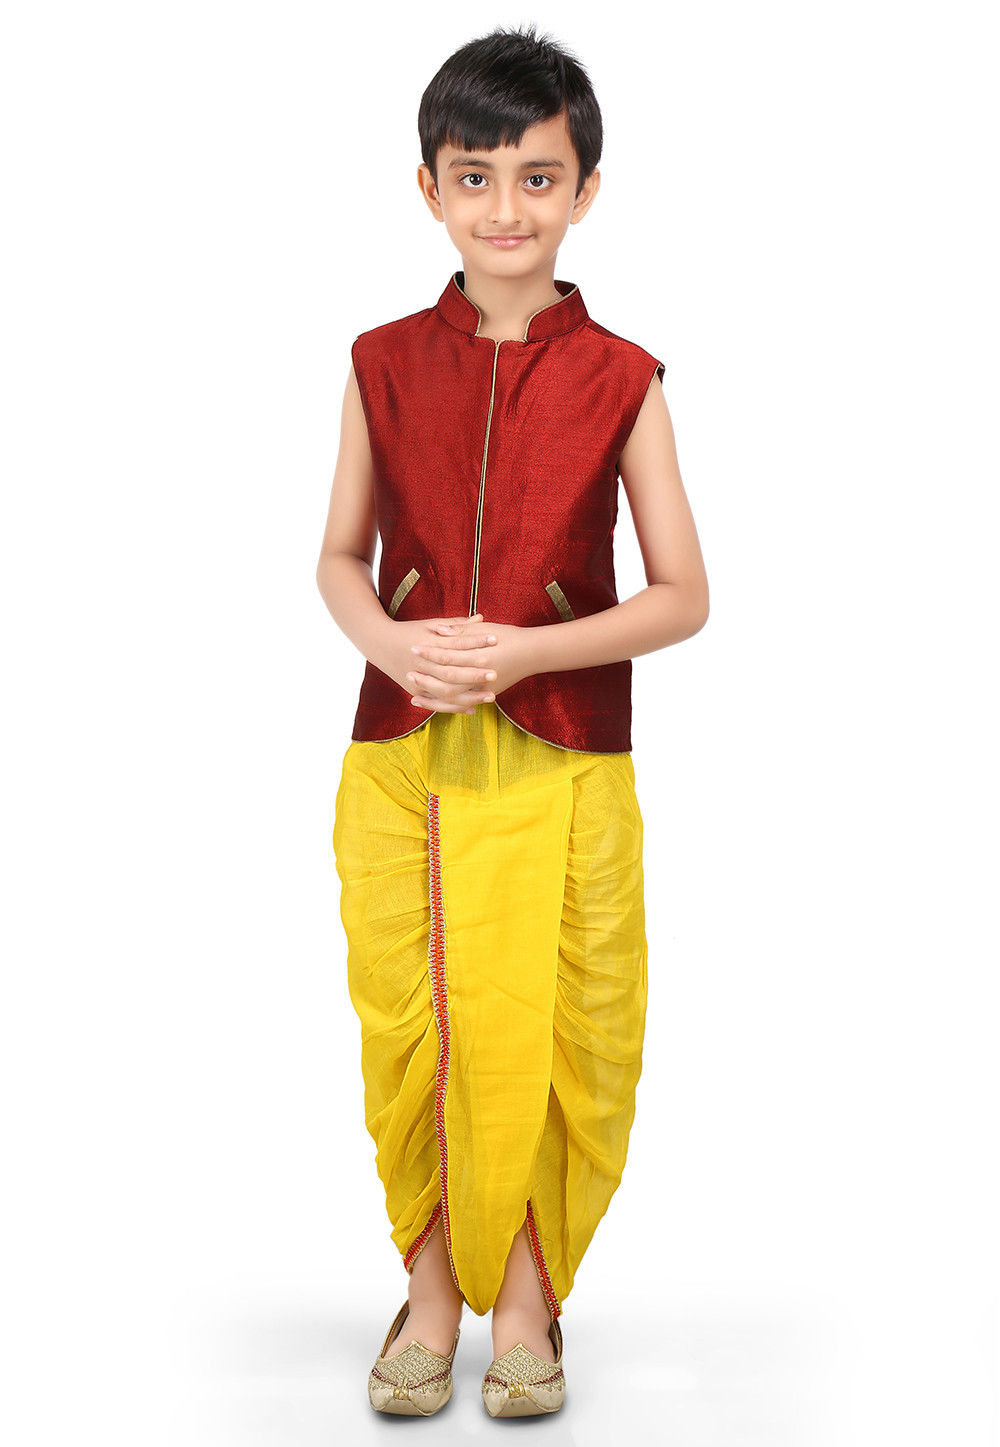 Plain Dupion Jacket and Dhoti Set in Maroon and Yellow